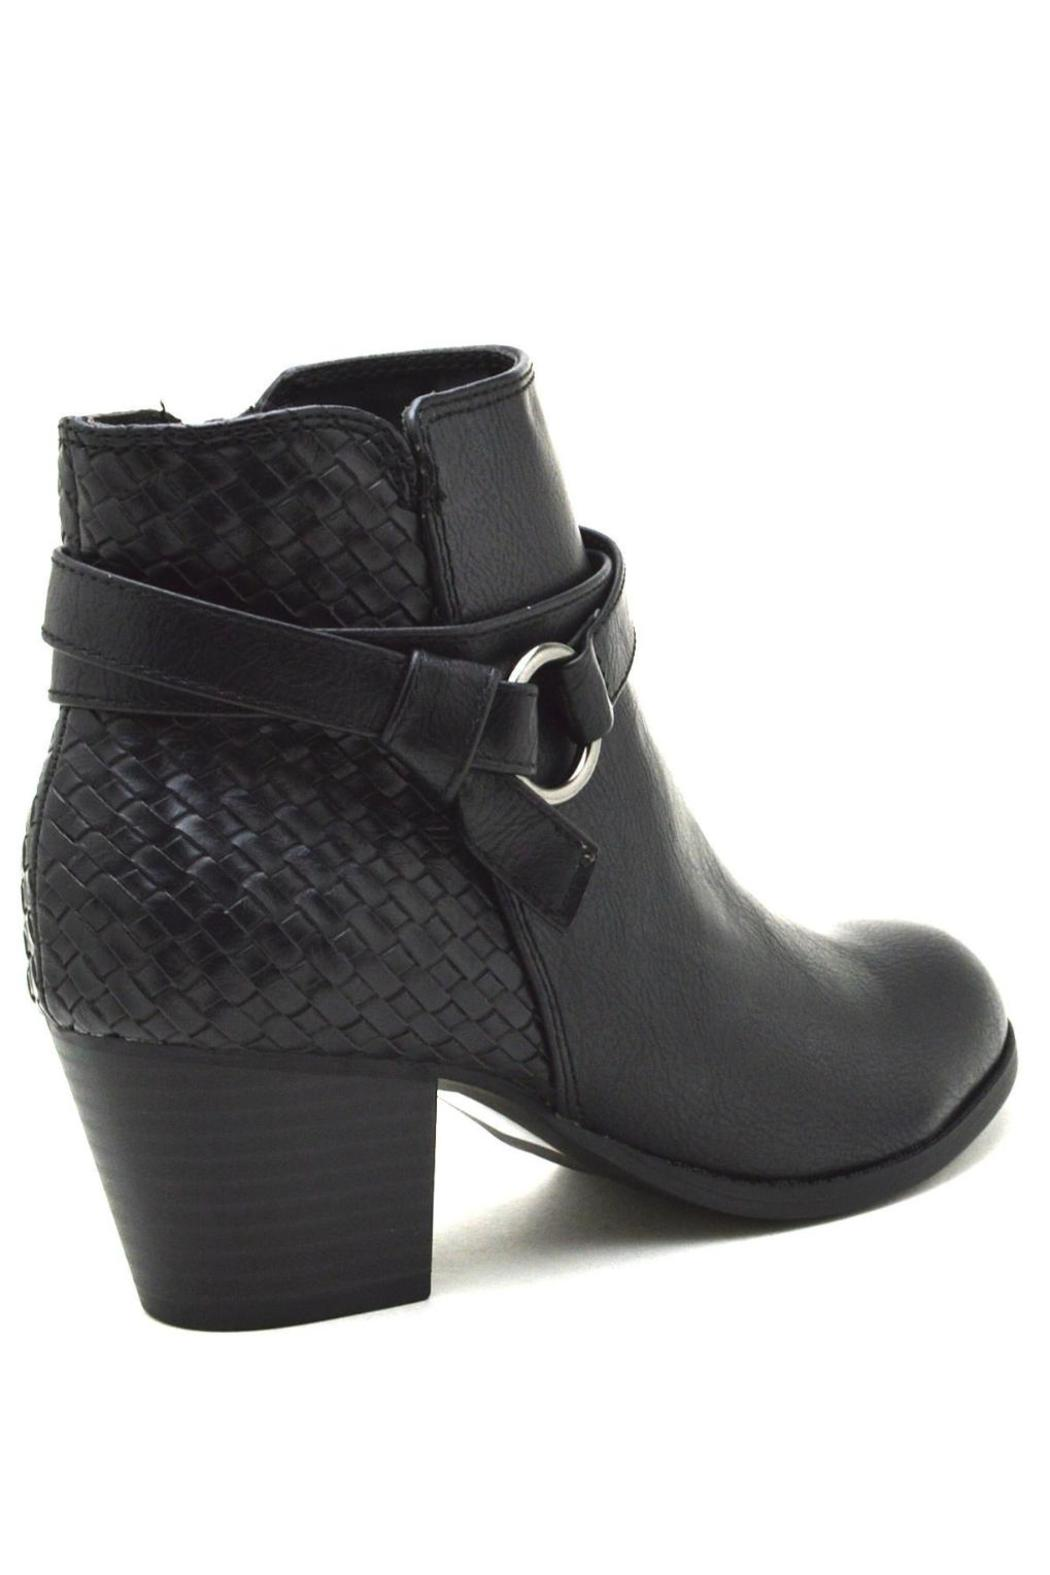 City Classified Woven Back-Belted Booties - Front Full Image